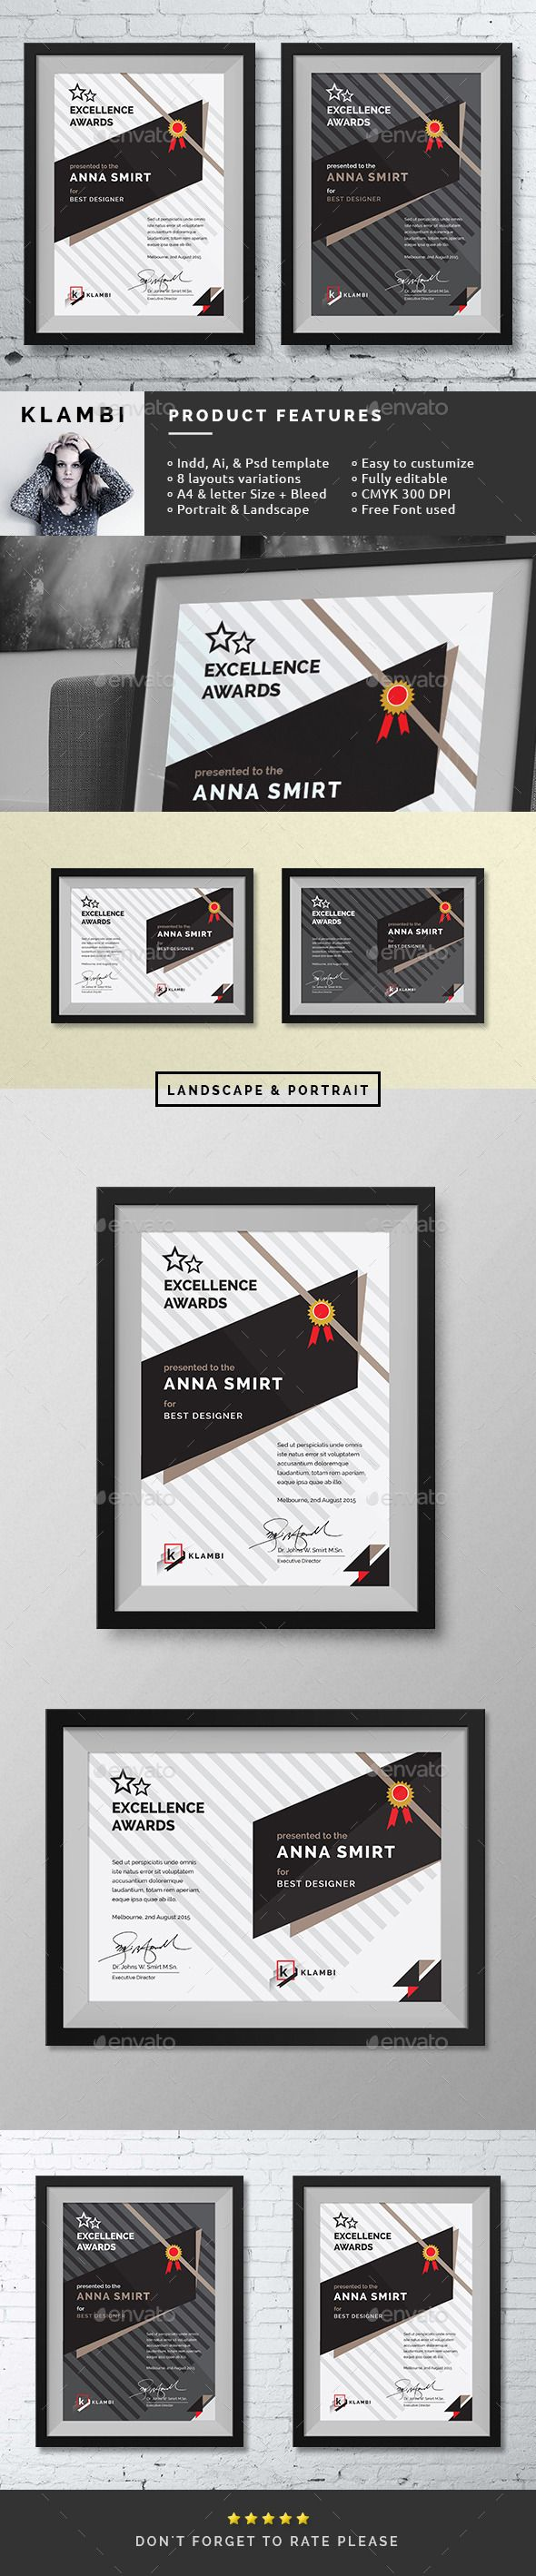 Fashion Awards Certificates Template PSD, InDesign INDD, AI Illustrator. Download here: http://graphicriver.net/item/fashion-awards-certificates/11276199?ref=ksioks